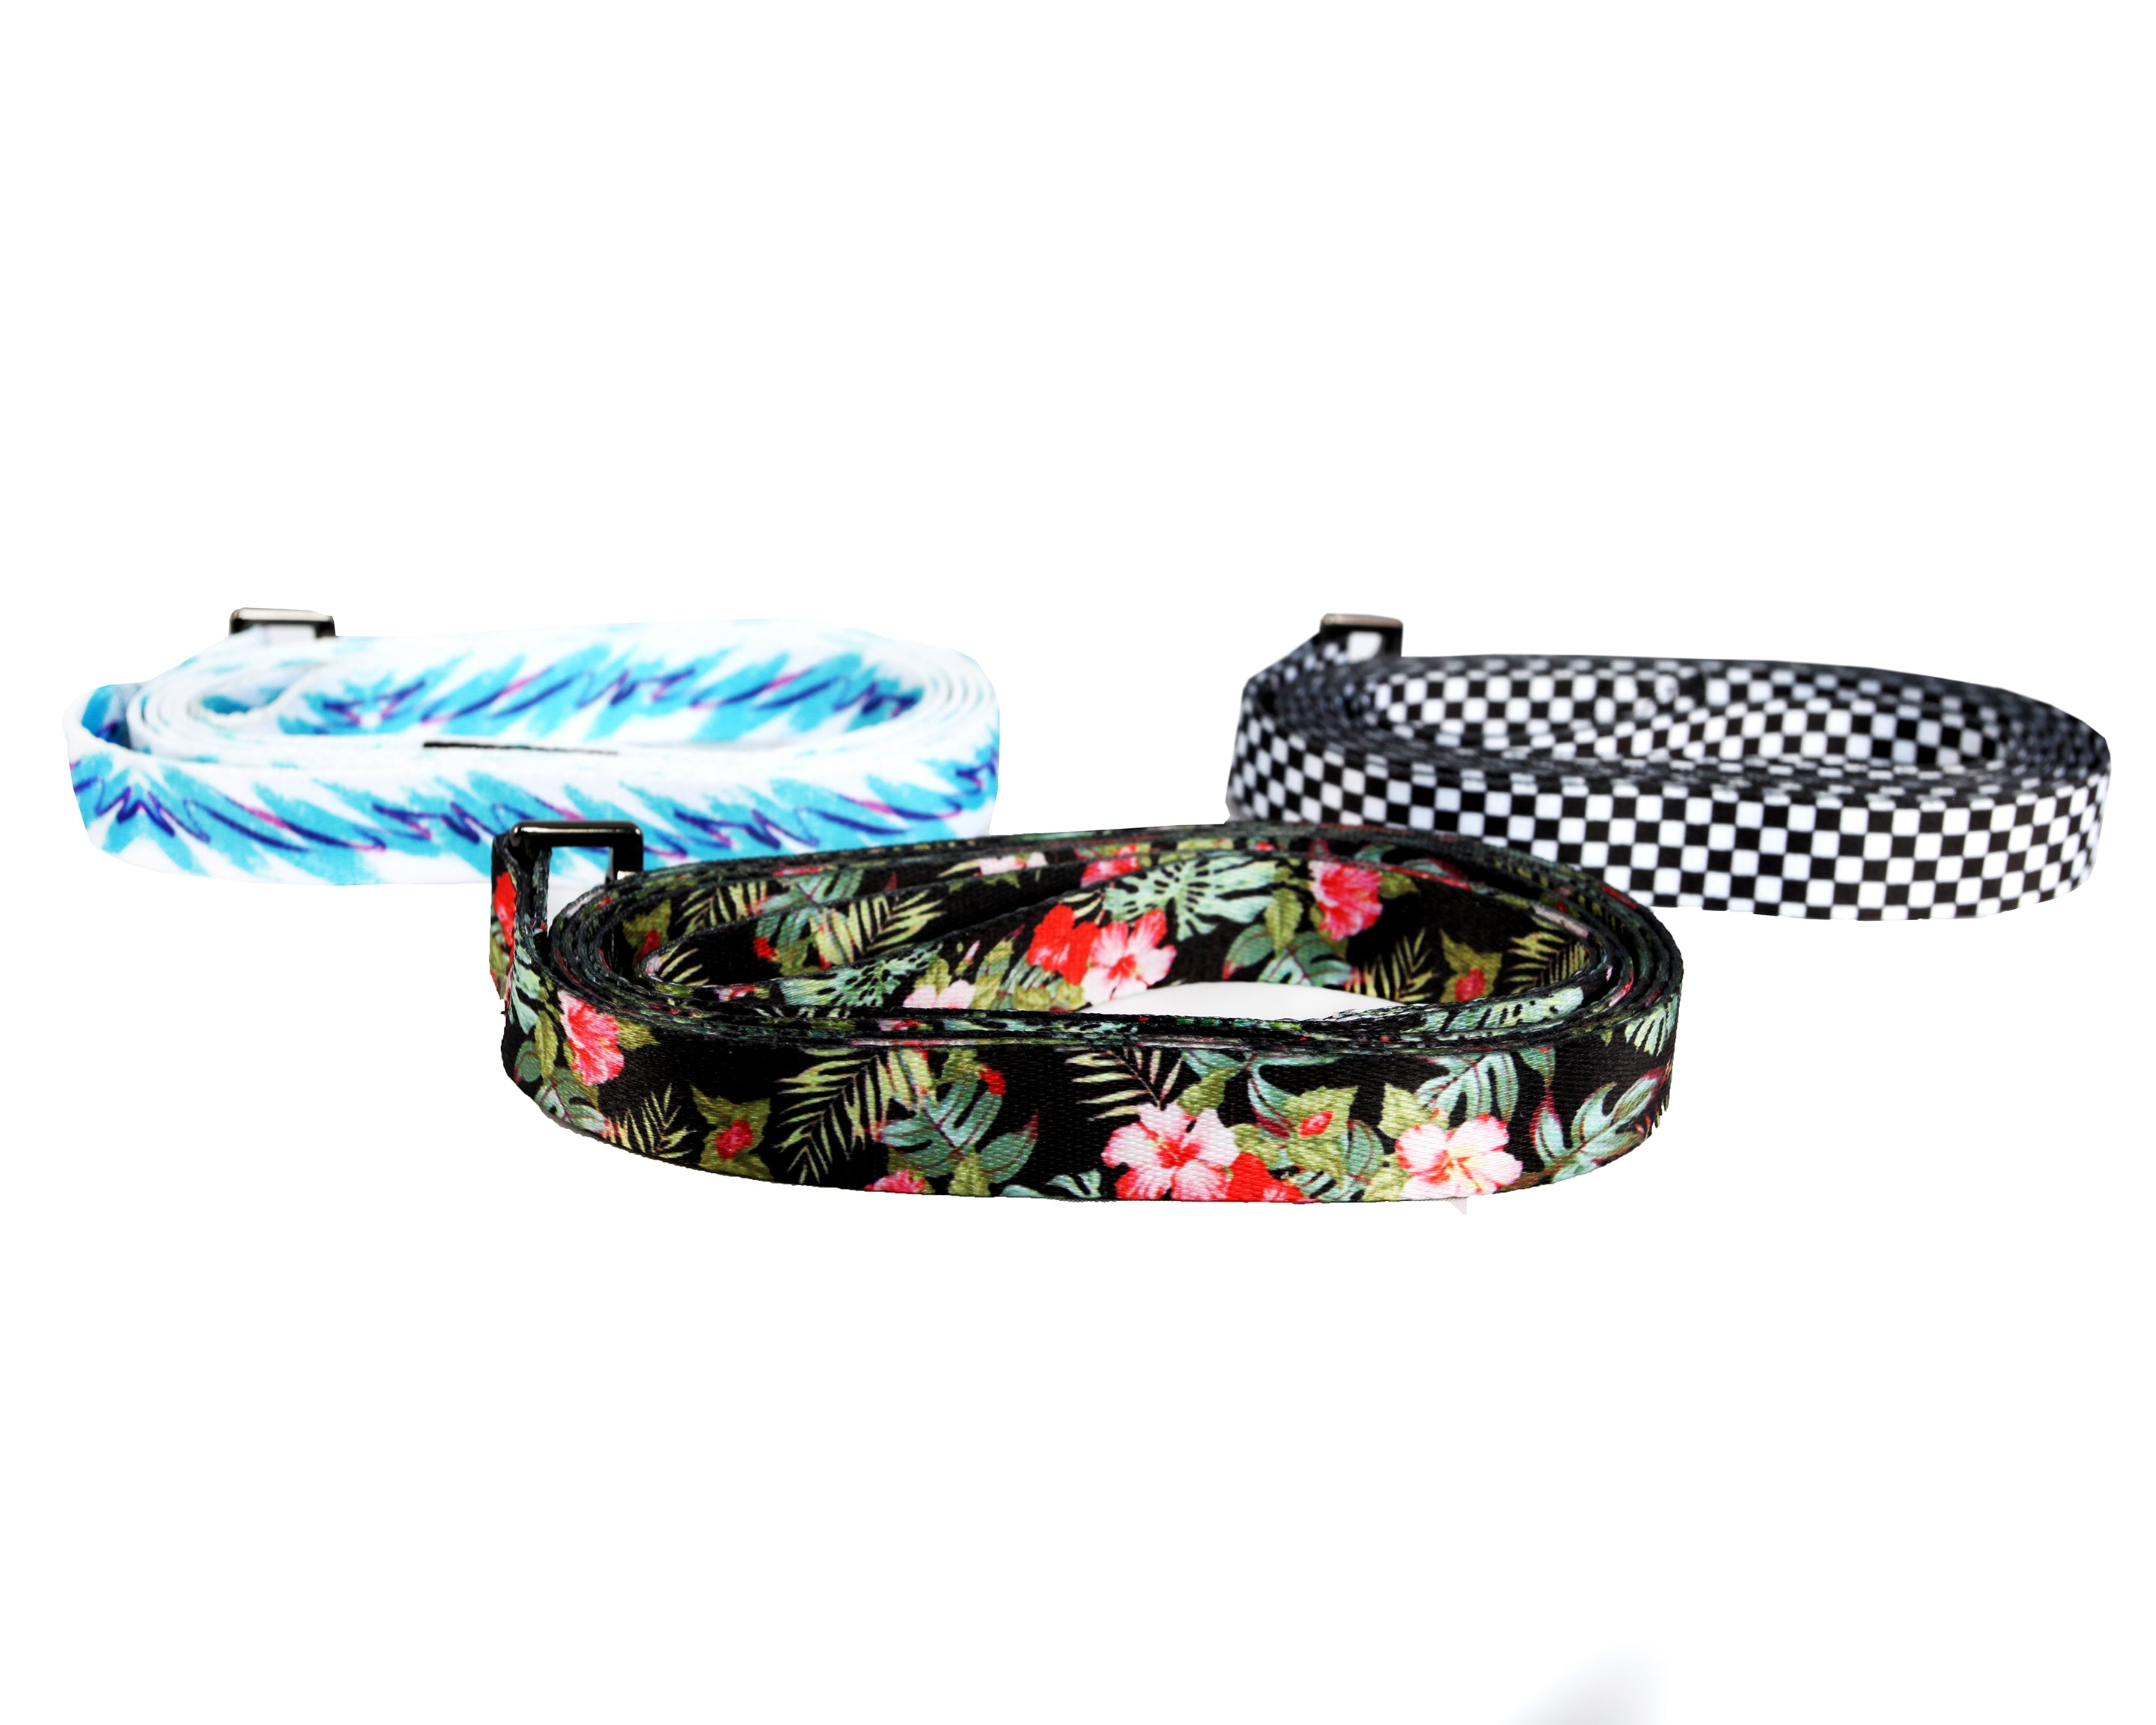 The Hilo Dog Leash